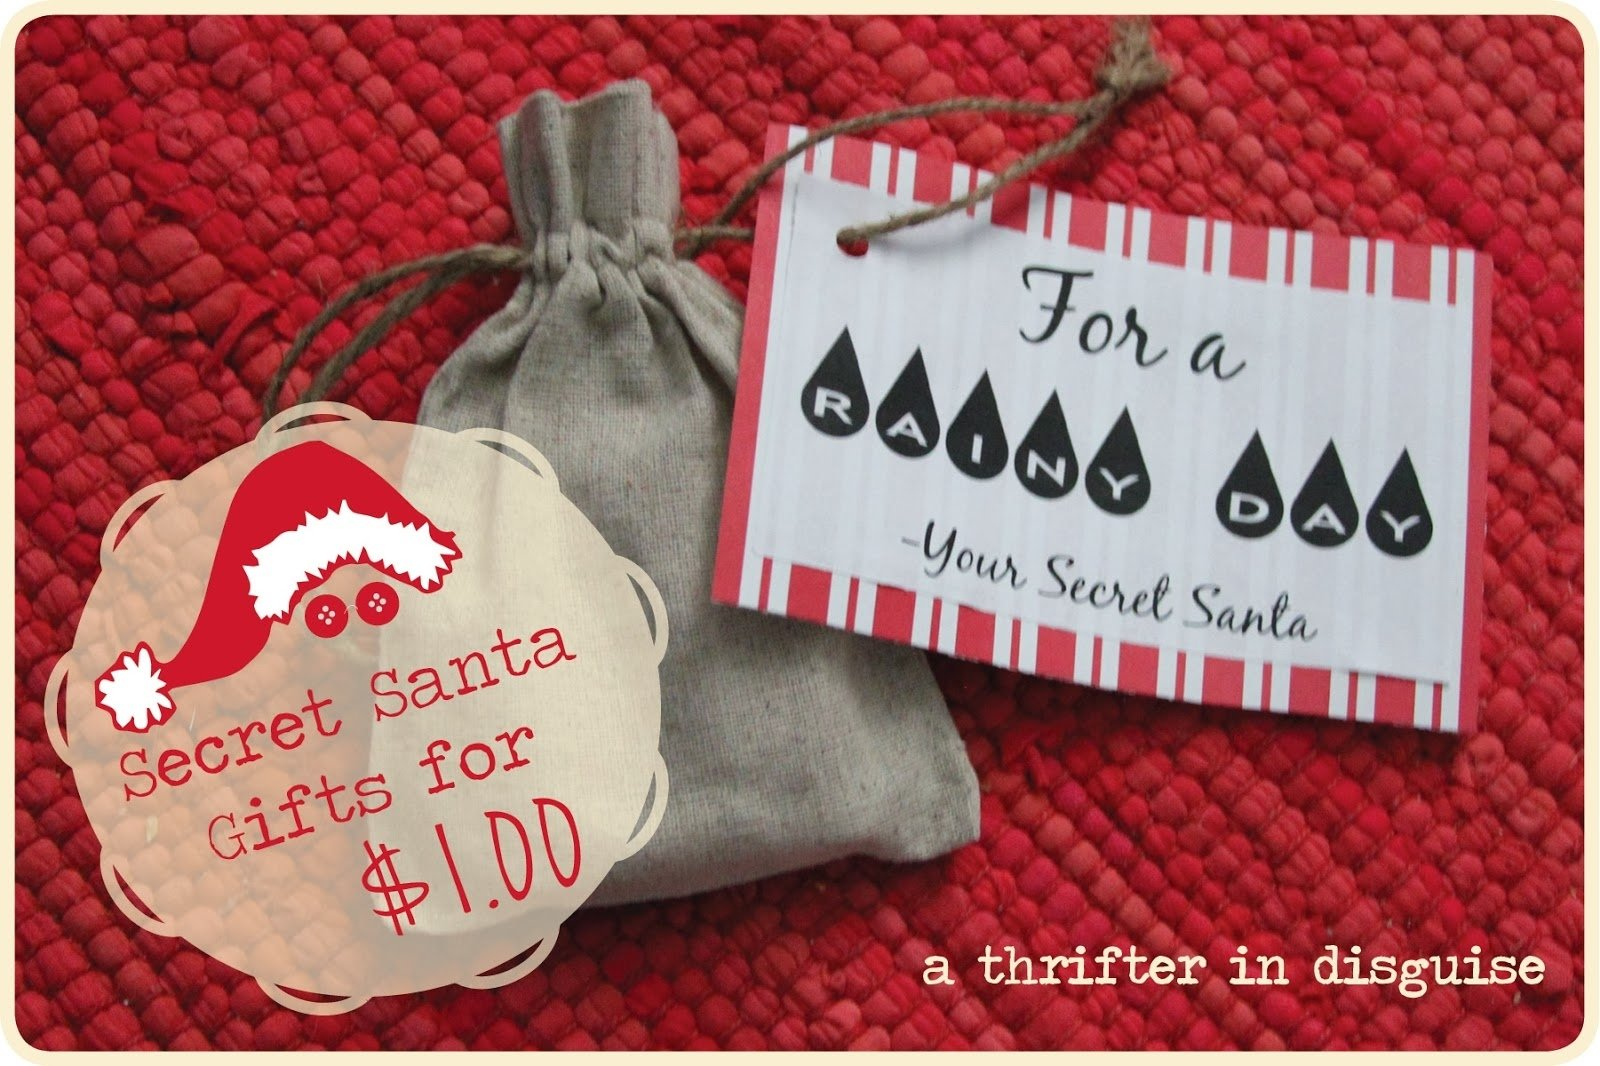 10 Perfect Funny Secret Santa Gift Ideas a thrifter in disguise secret santa saturday gifts for a dollar 5 2021